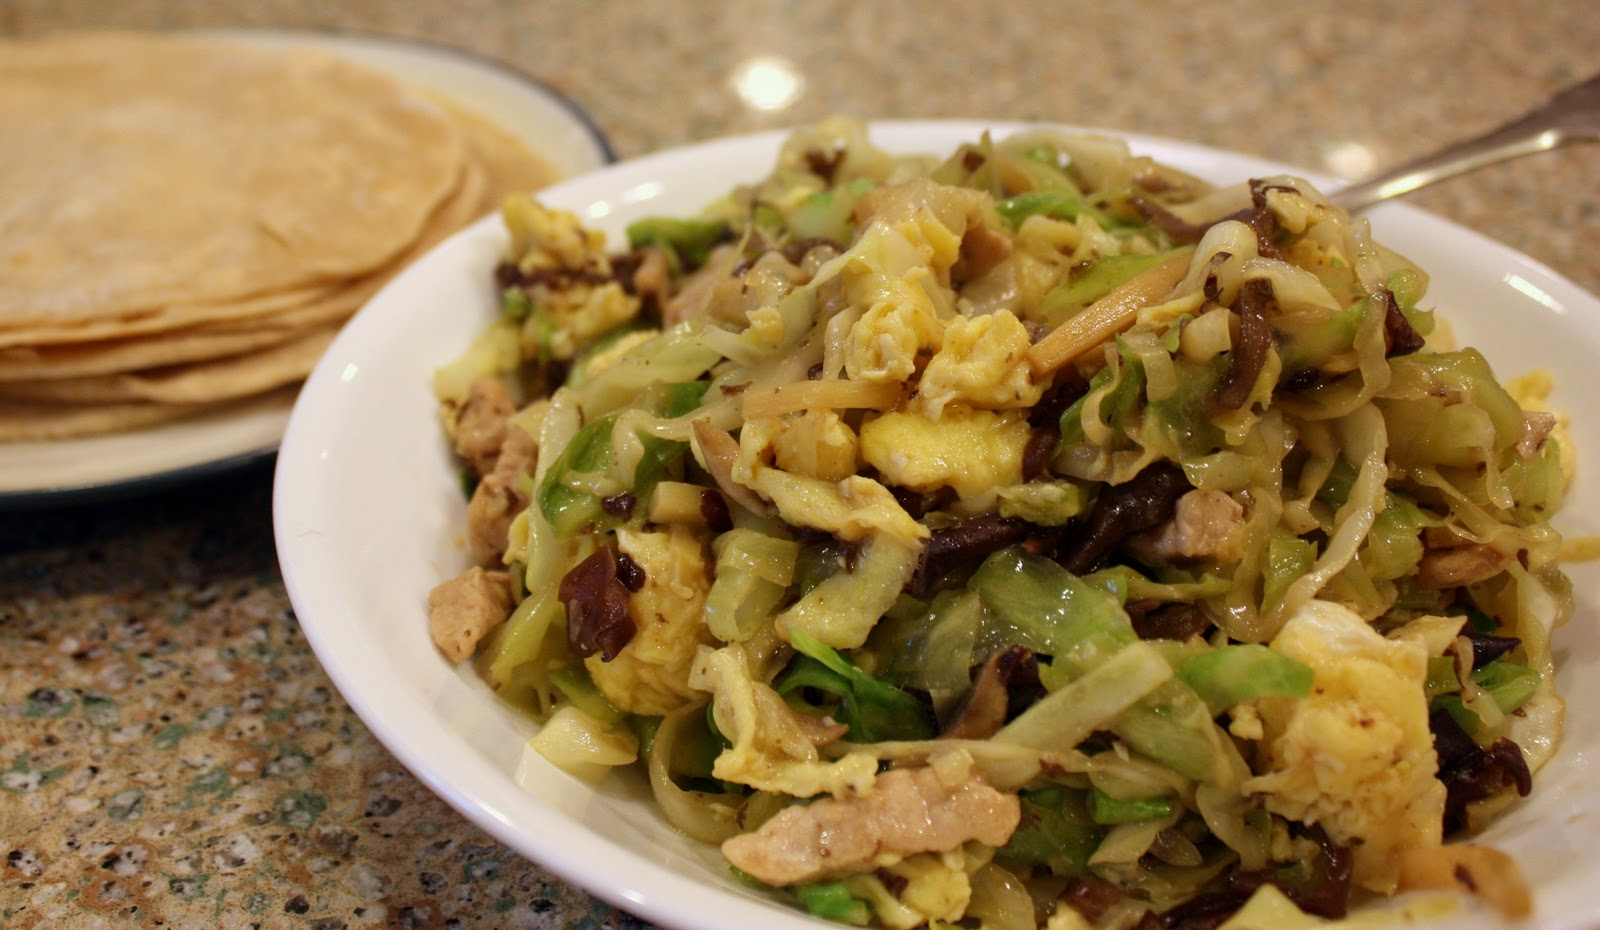 ... challenge was moo shu pork i love moo shu i had made it once in the